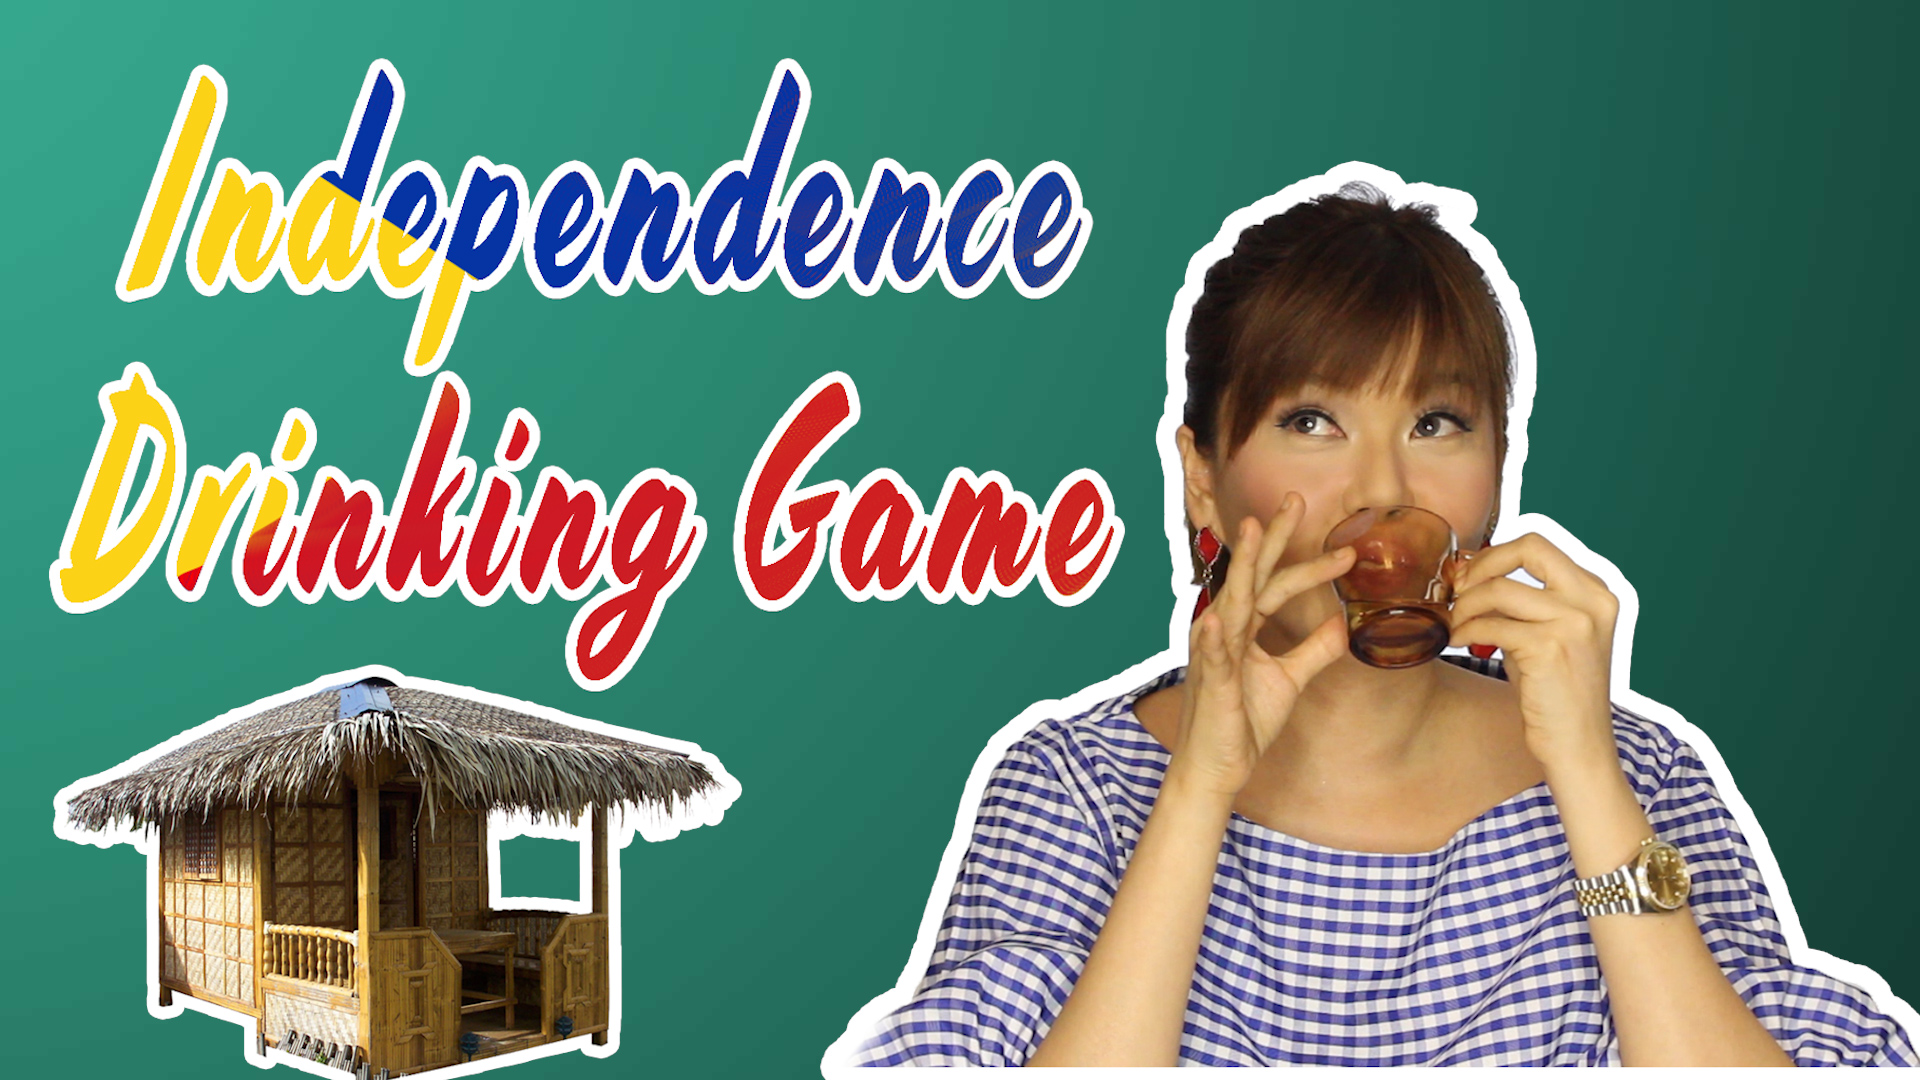 Bianca Valerio Malacanang palace Philippines Drinking Game Challenge